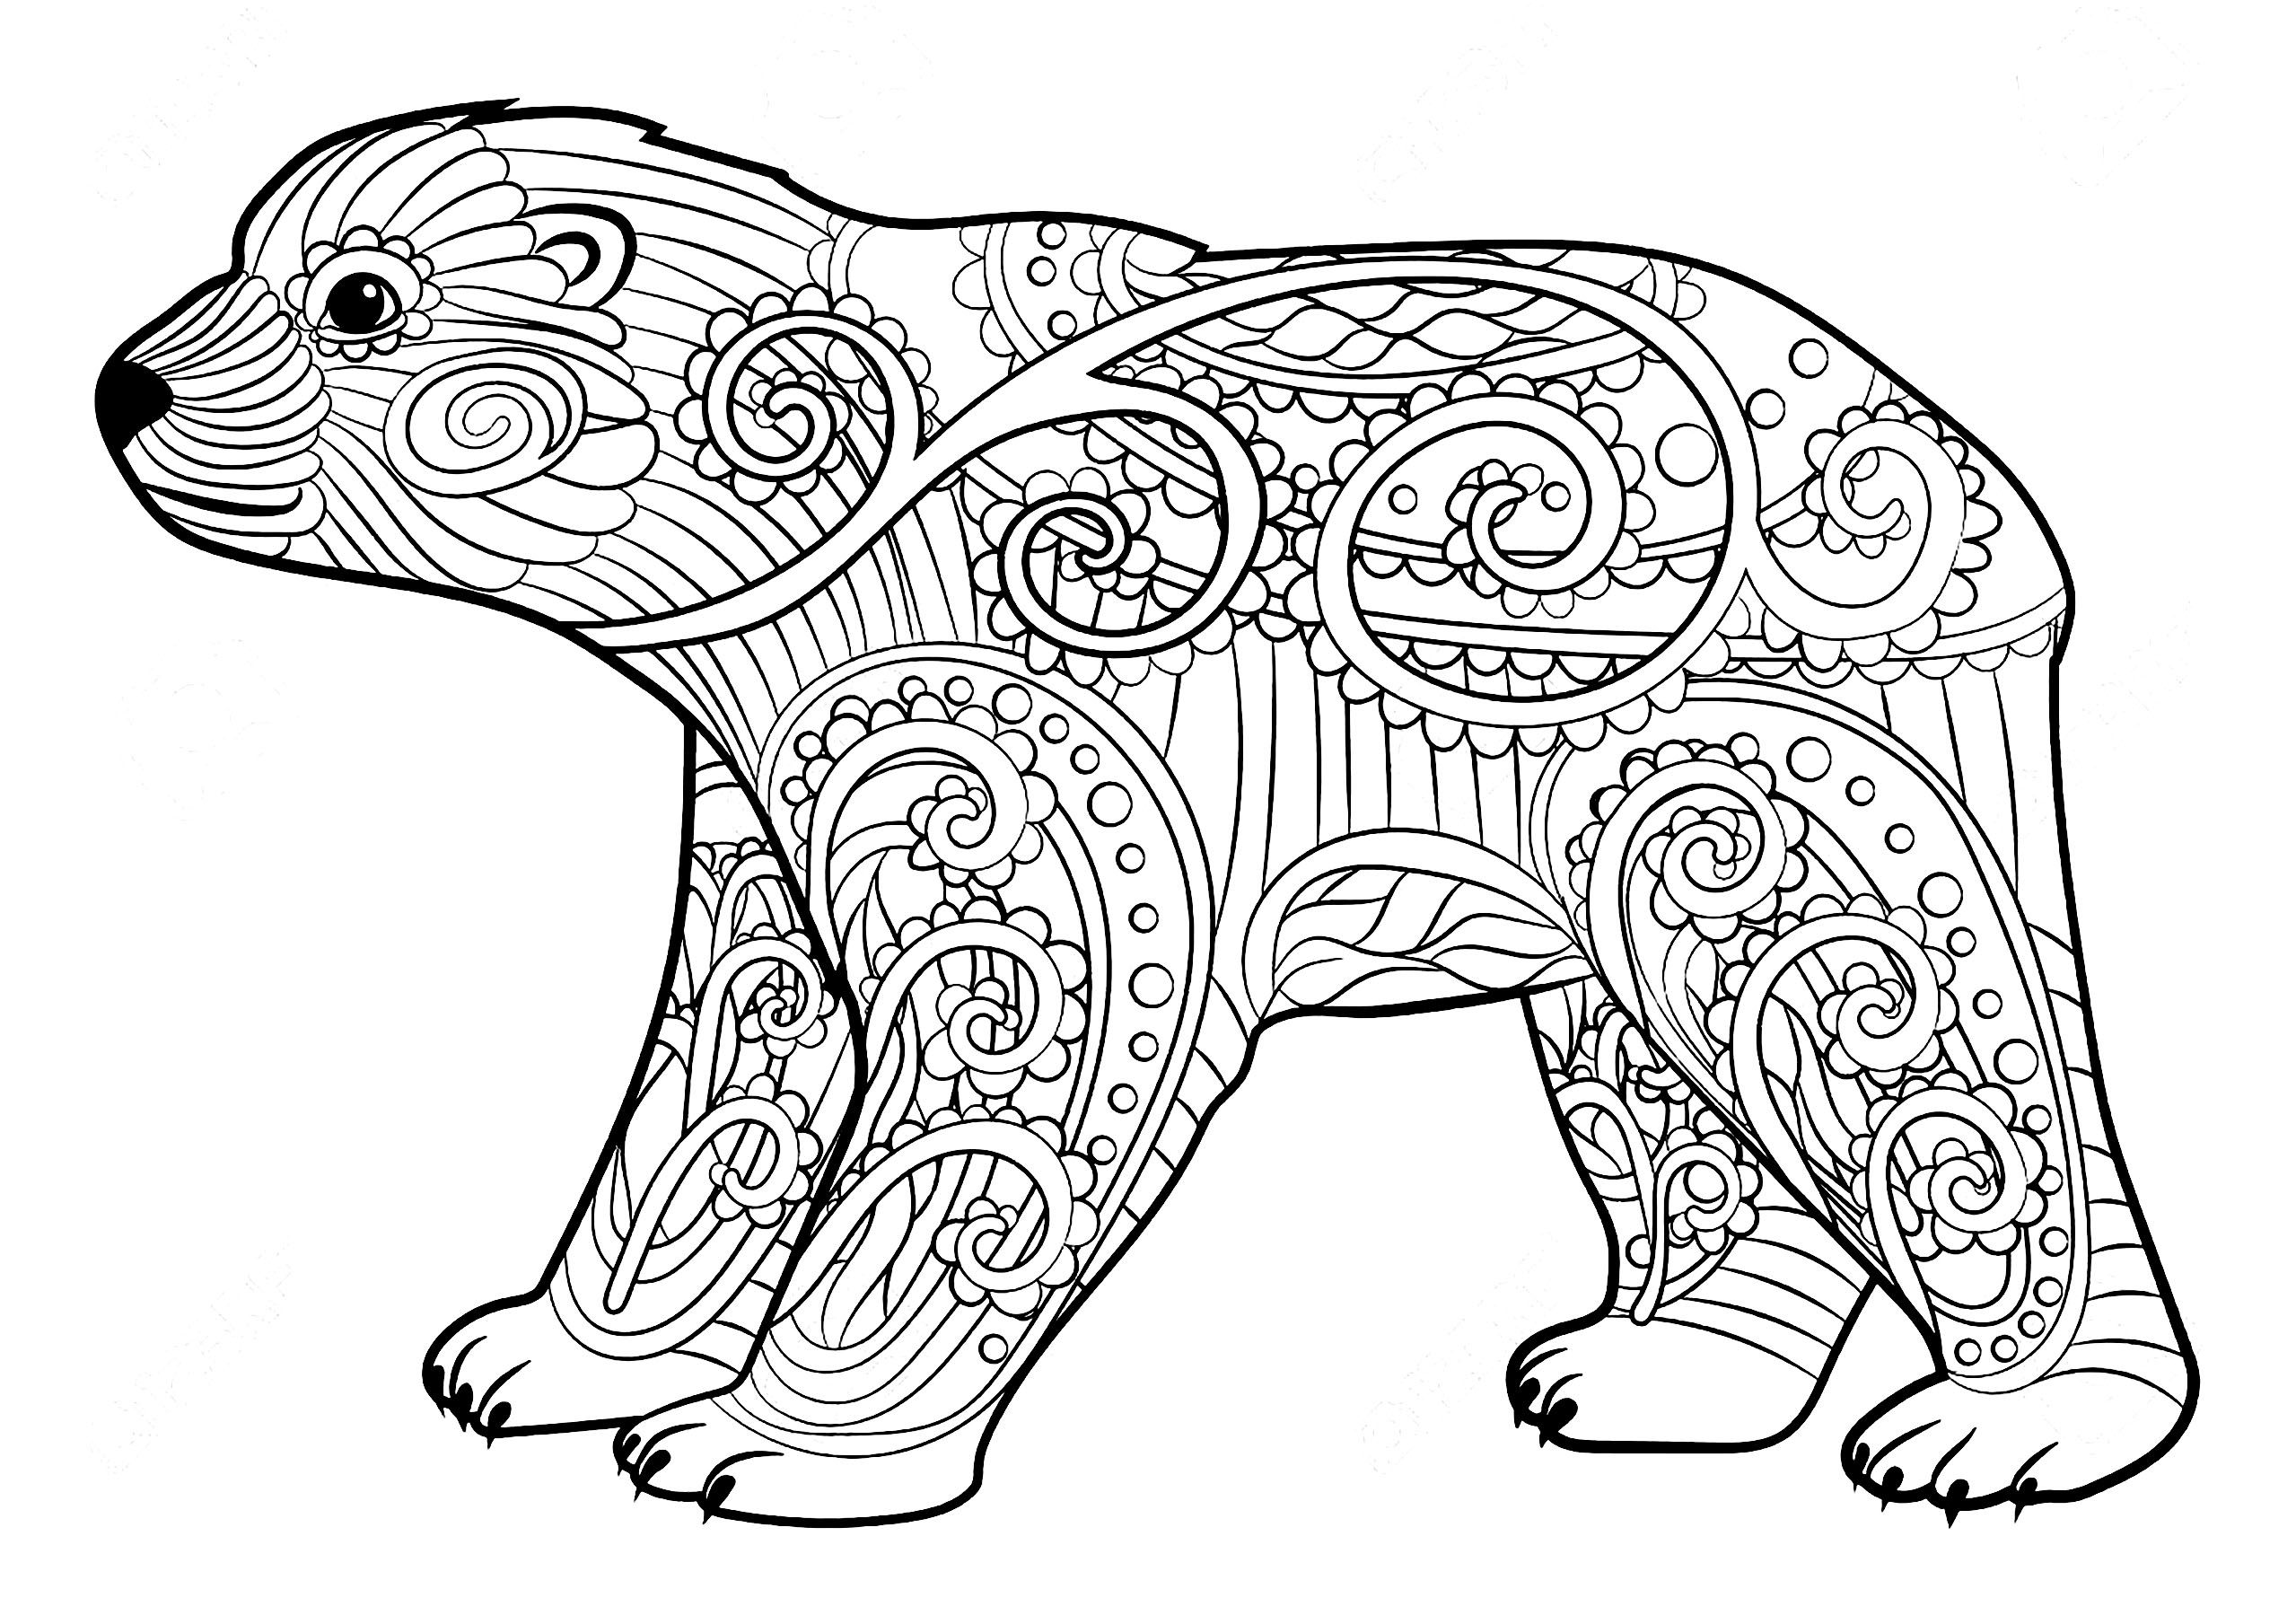 Young Bear Simple Coloring Page Of A Little Bear Full Of Nice Patterns From The Gallery Bear Bear Coloring Pages Bear Coloring Page Animal Coloring Pages